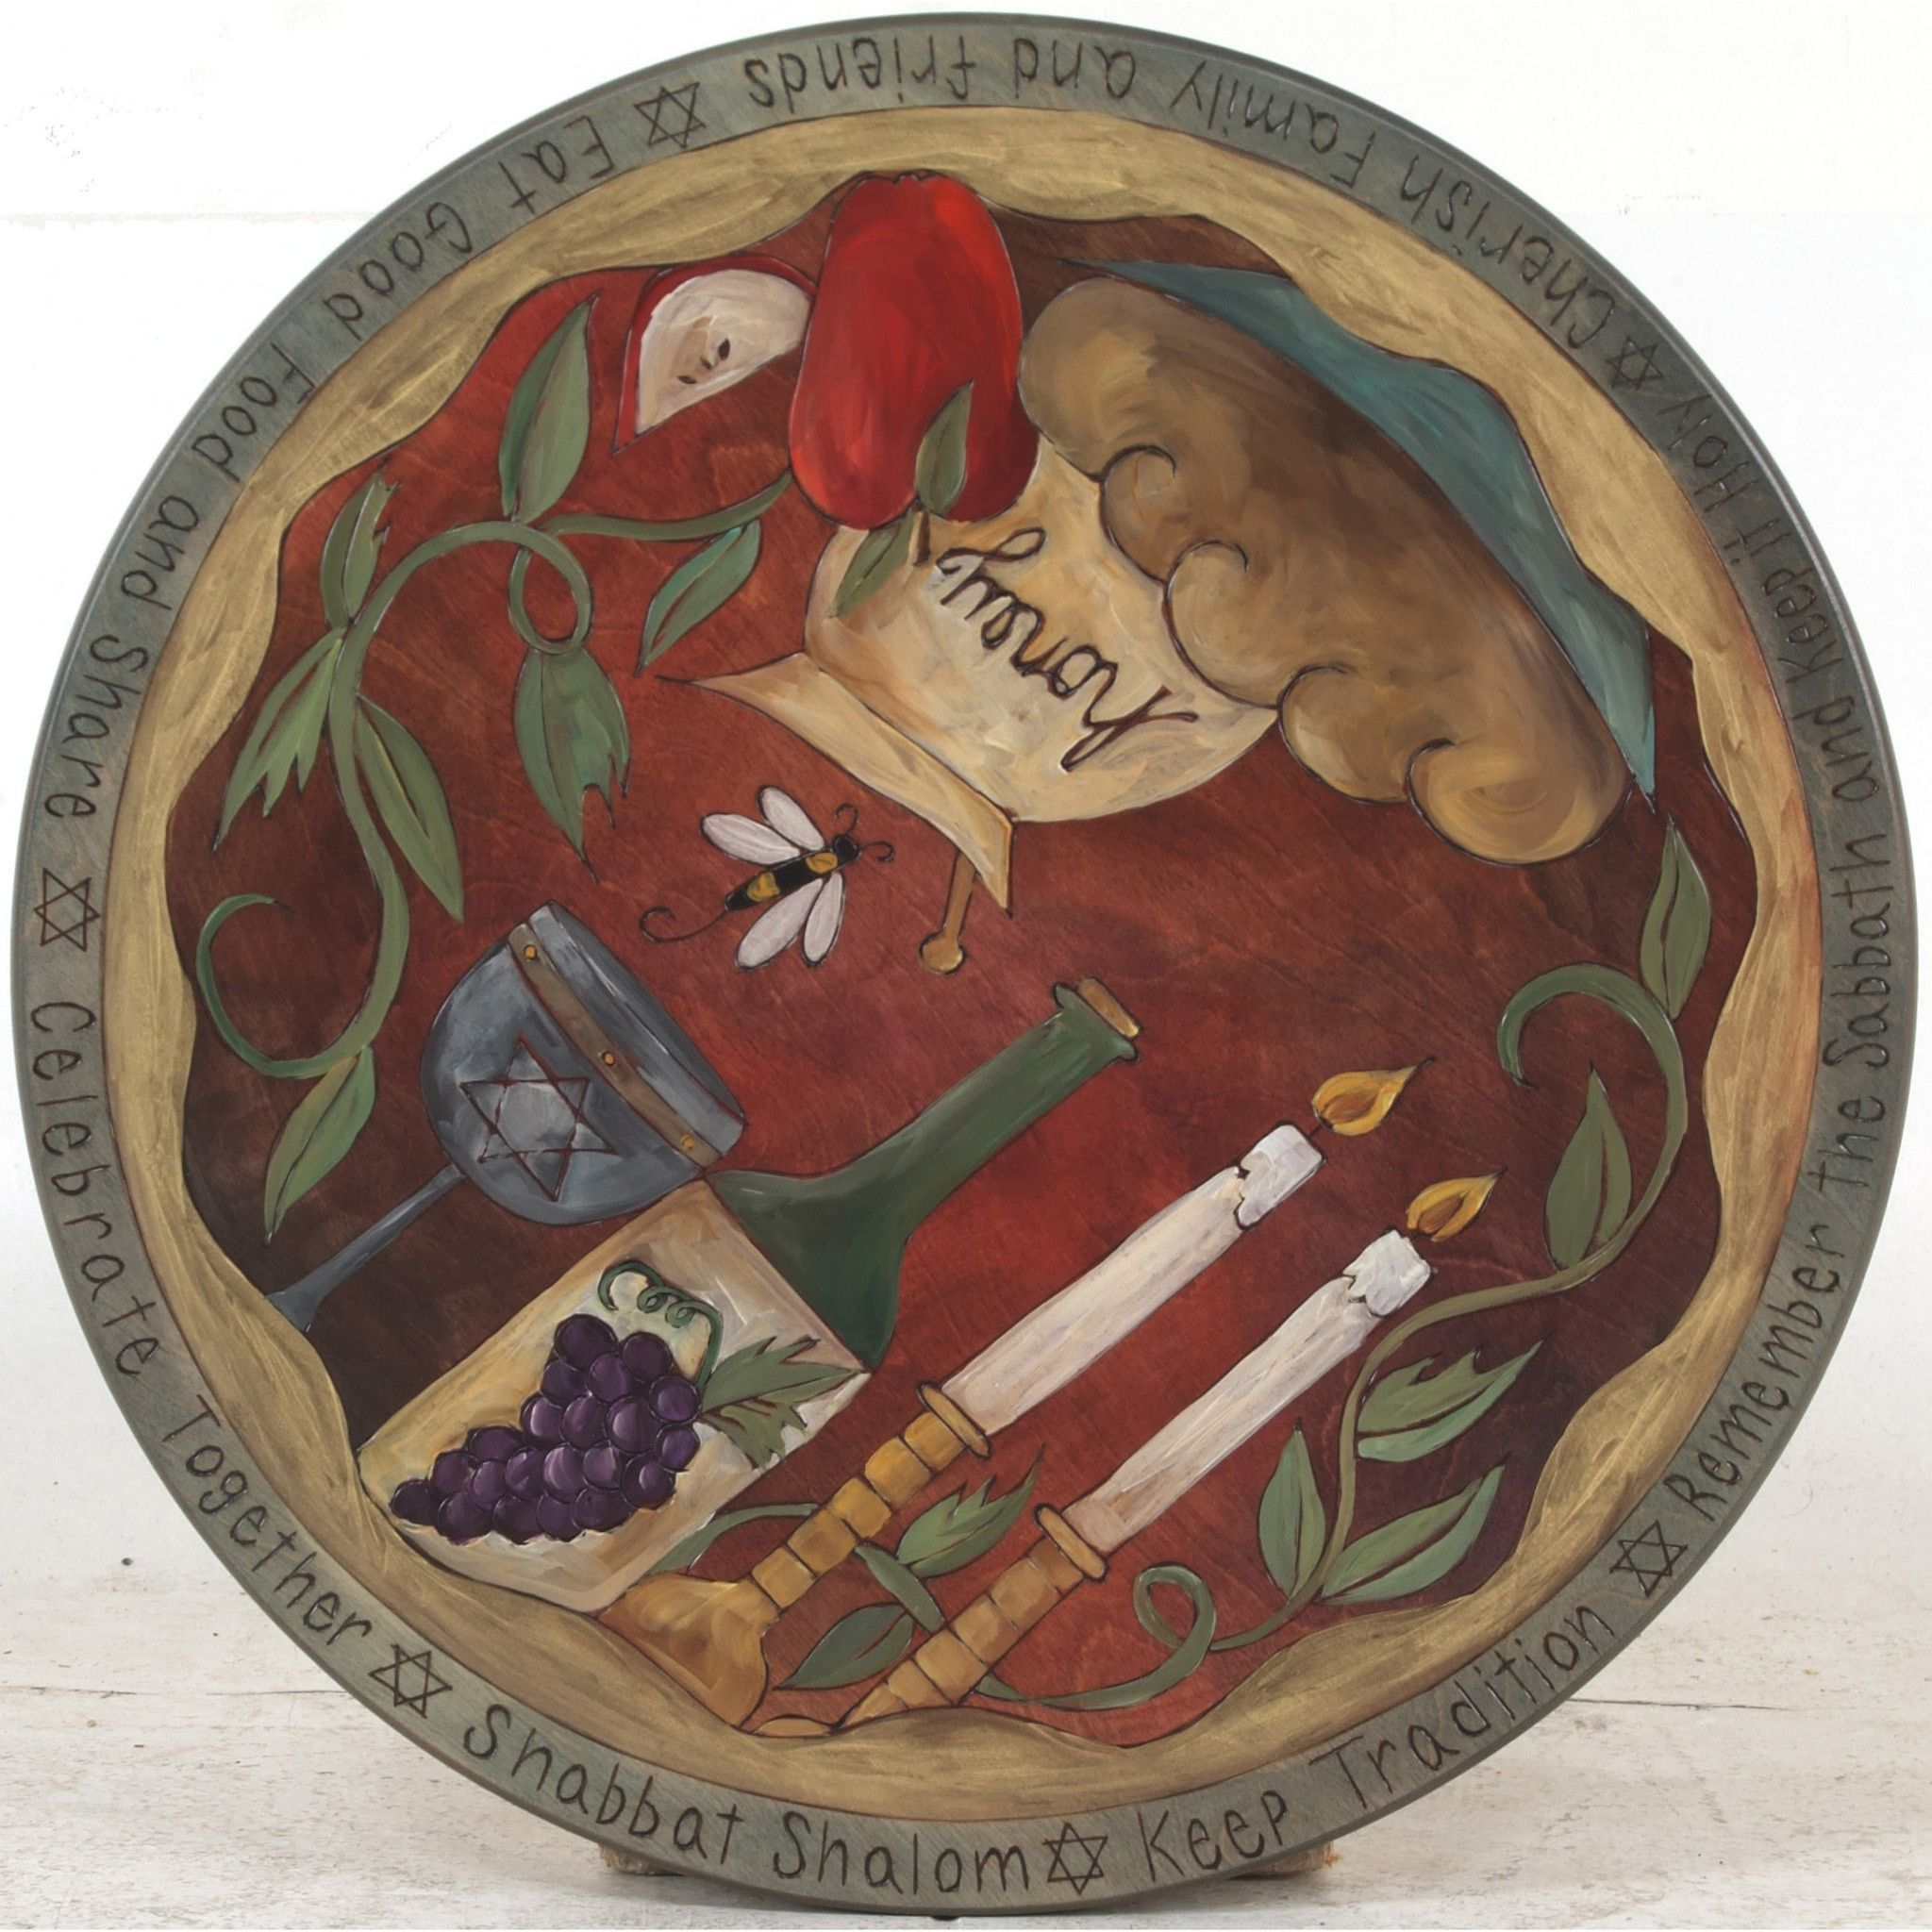 Sticks Lazy Susan Sticks Judaic Small Lazy Susan Lzy001S33198 Artistic Artisan